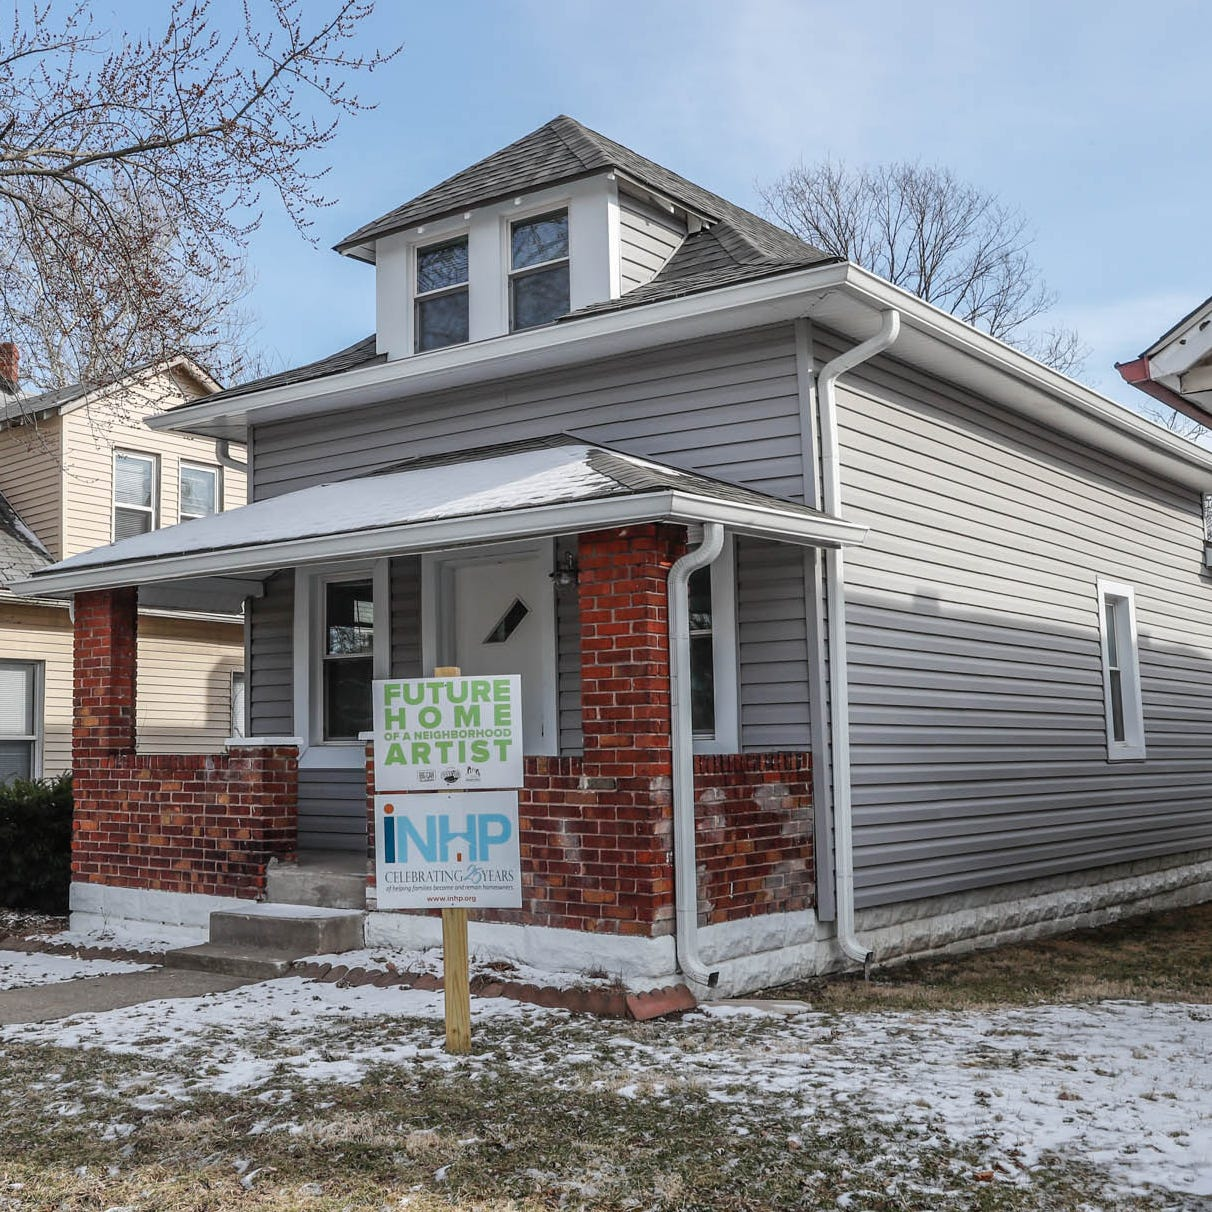 Indianapolis artists might qualify to buy a rehabbed home for only $49,000. Here's how.